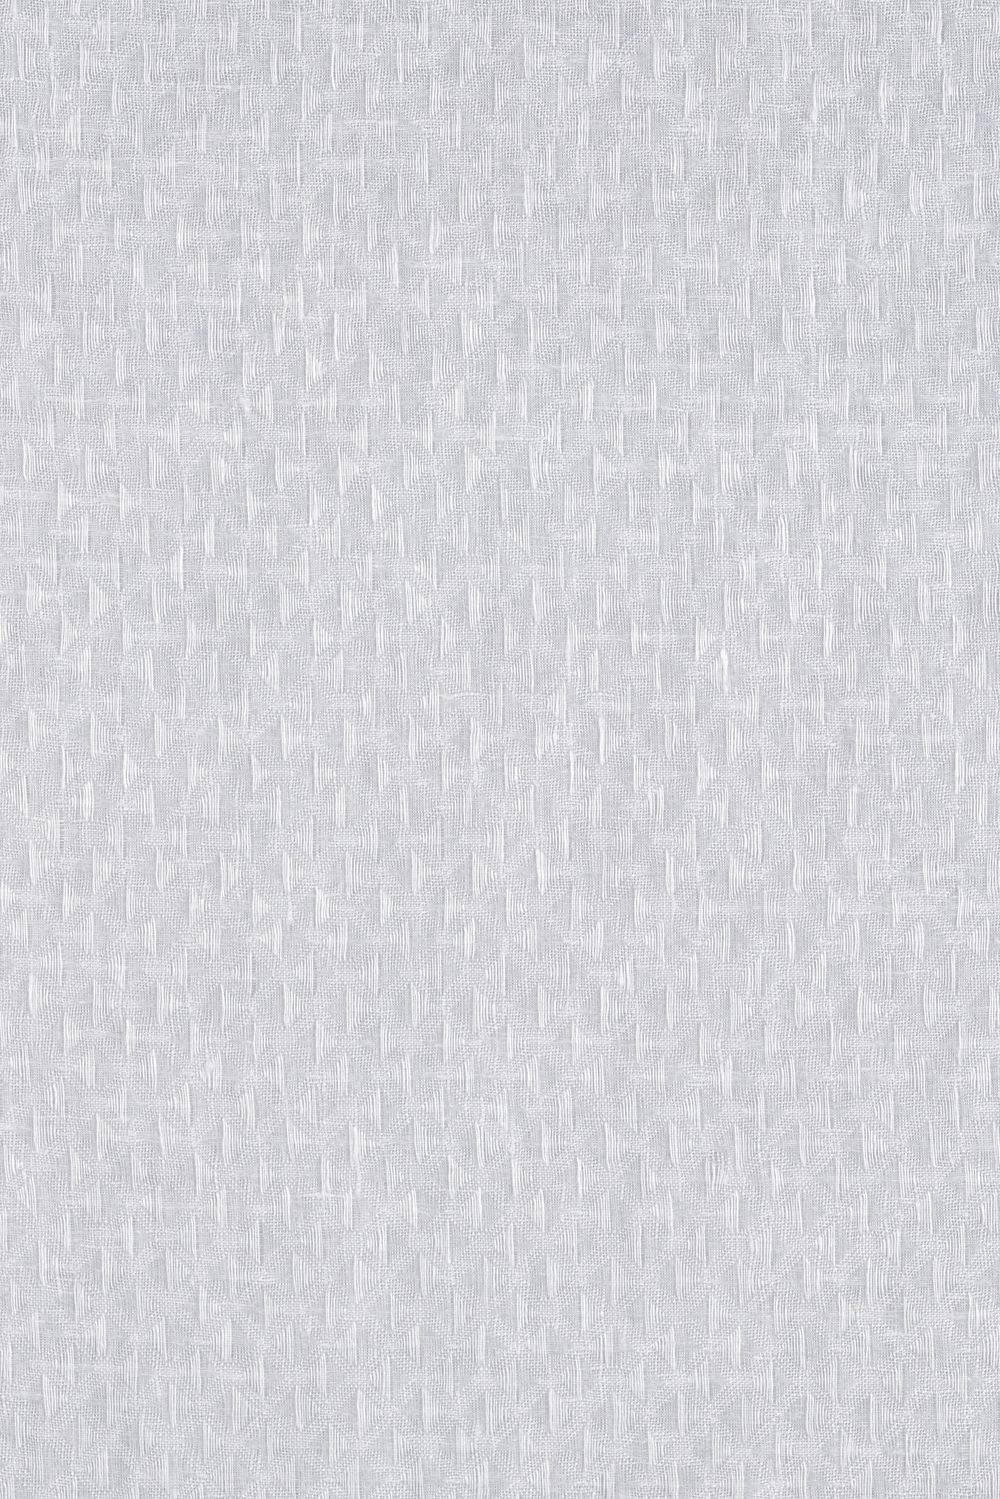 Photo of the fabric Origami Pearl swatch by Mokum. Use for Sheer Curtains. Style of Plain, Texture